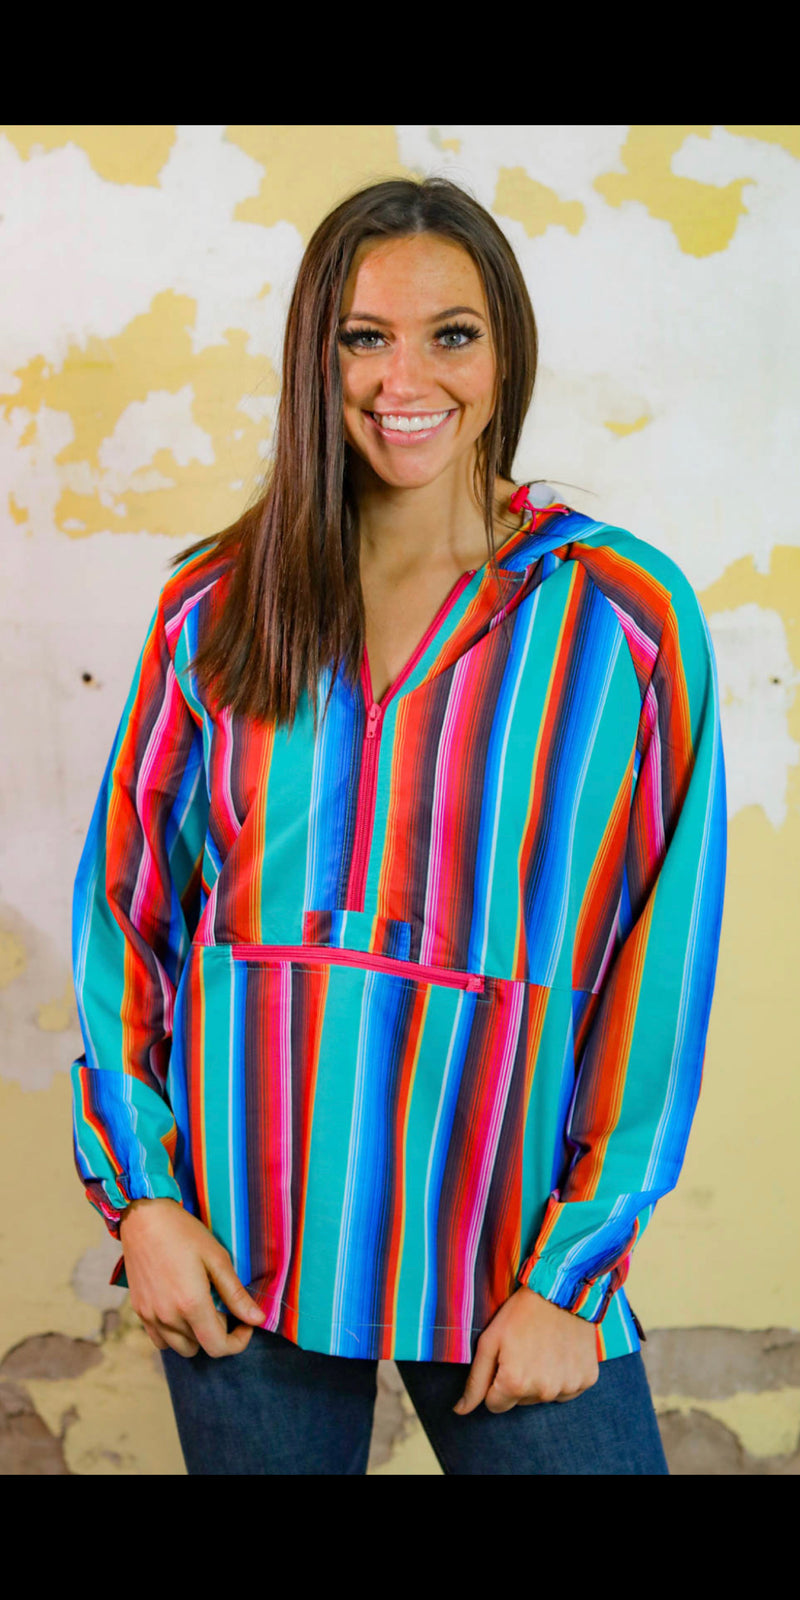 The Windy City Serape Windbreaker - Also in Plus Size